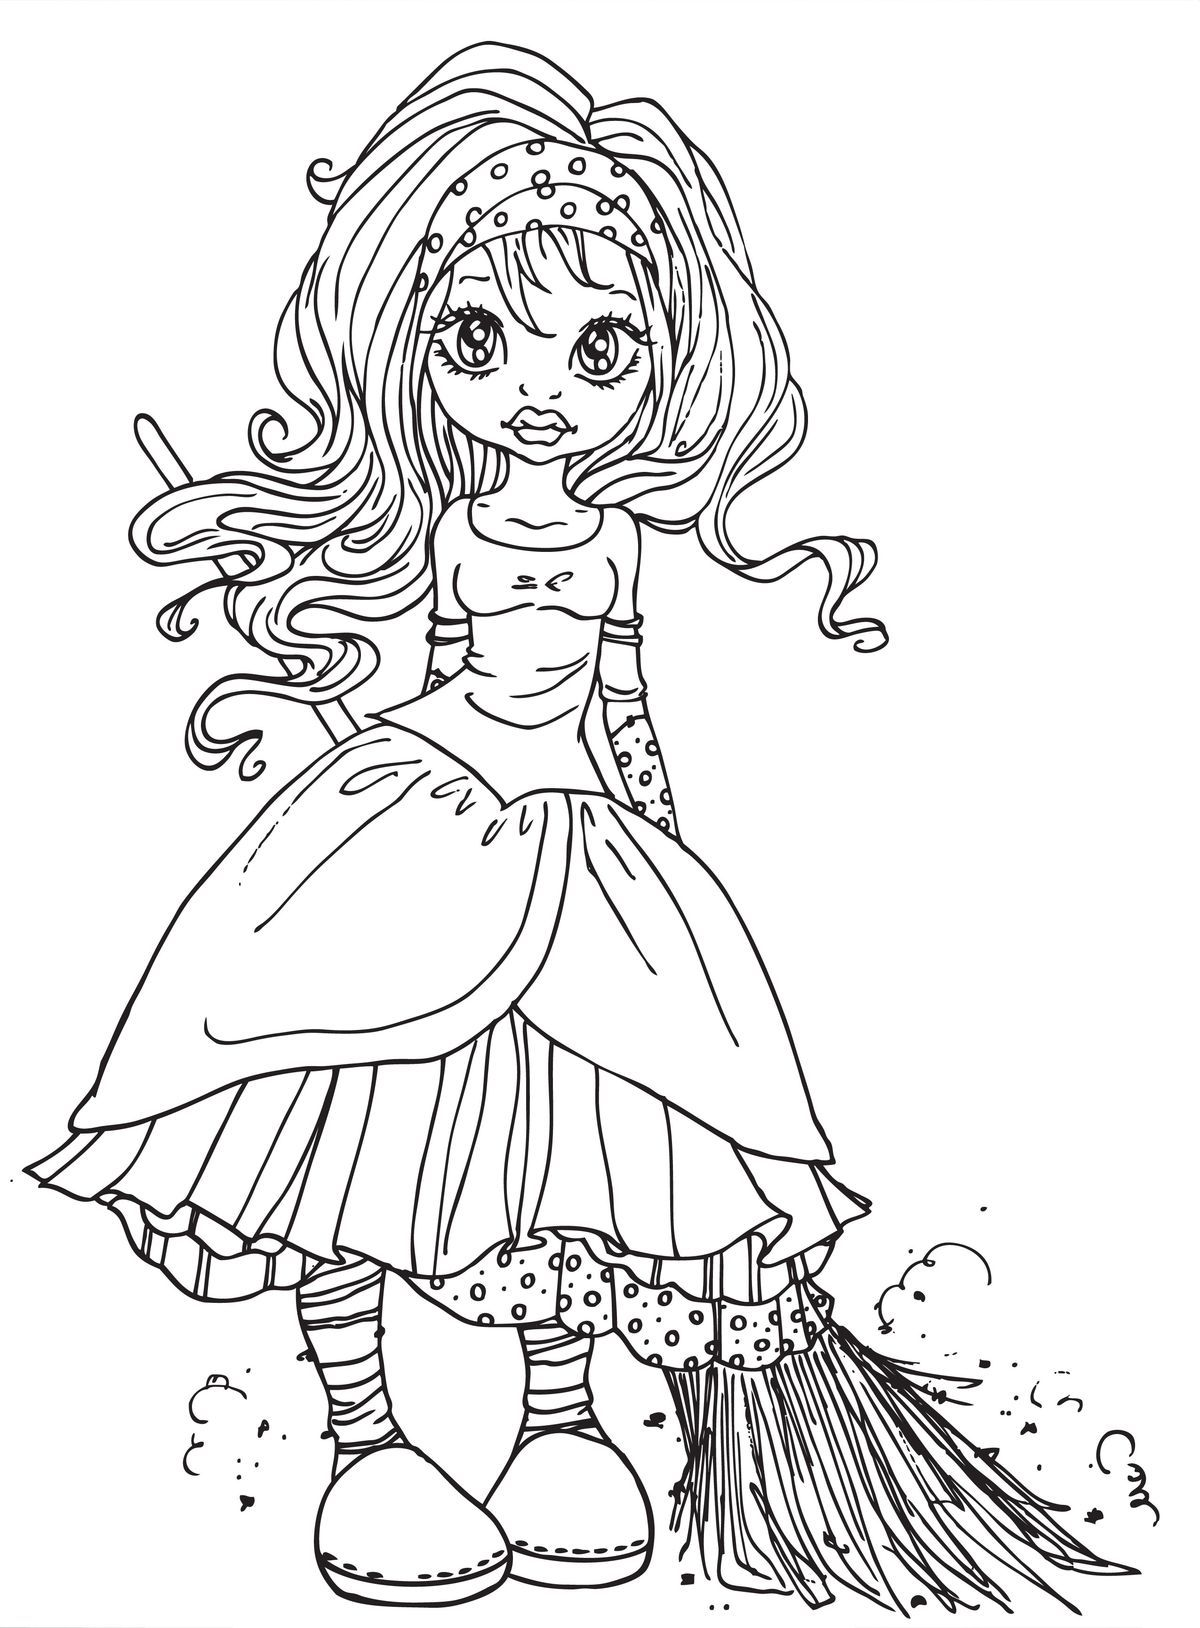 18+ Digital coloring pages for kids info